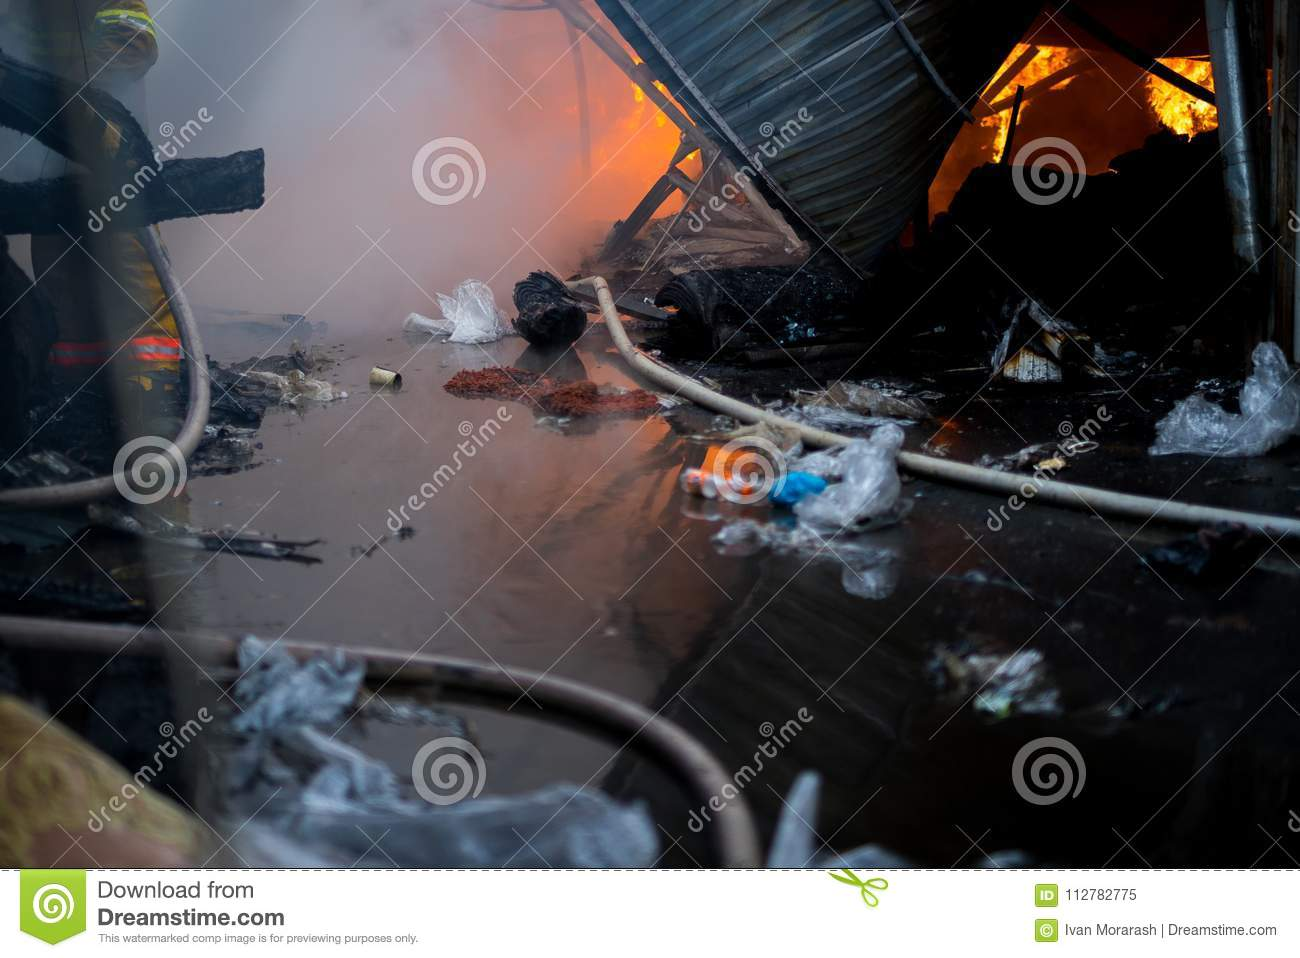 Local Market Tool >> Fire Of Building Local Market Is On Fire Editorial Image Image Of